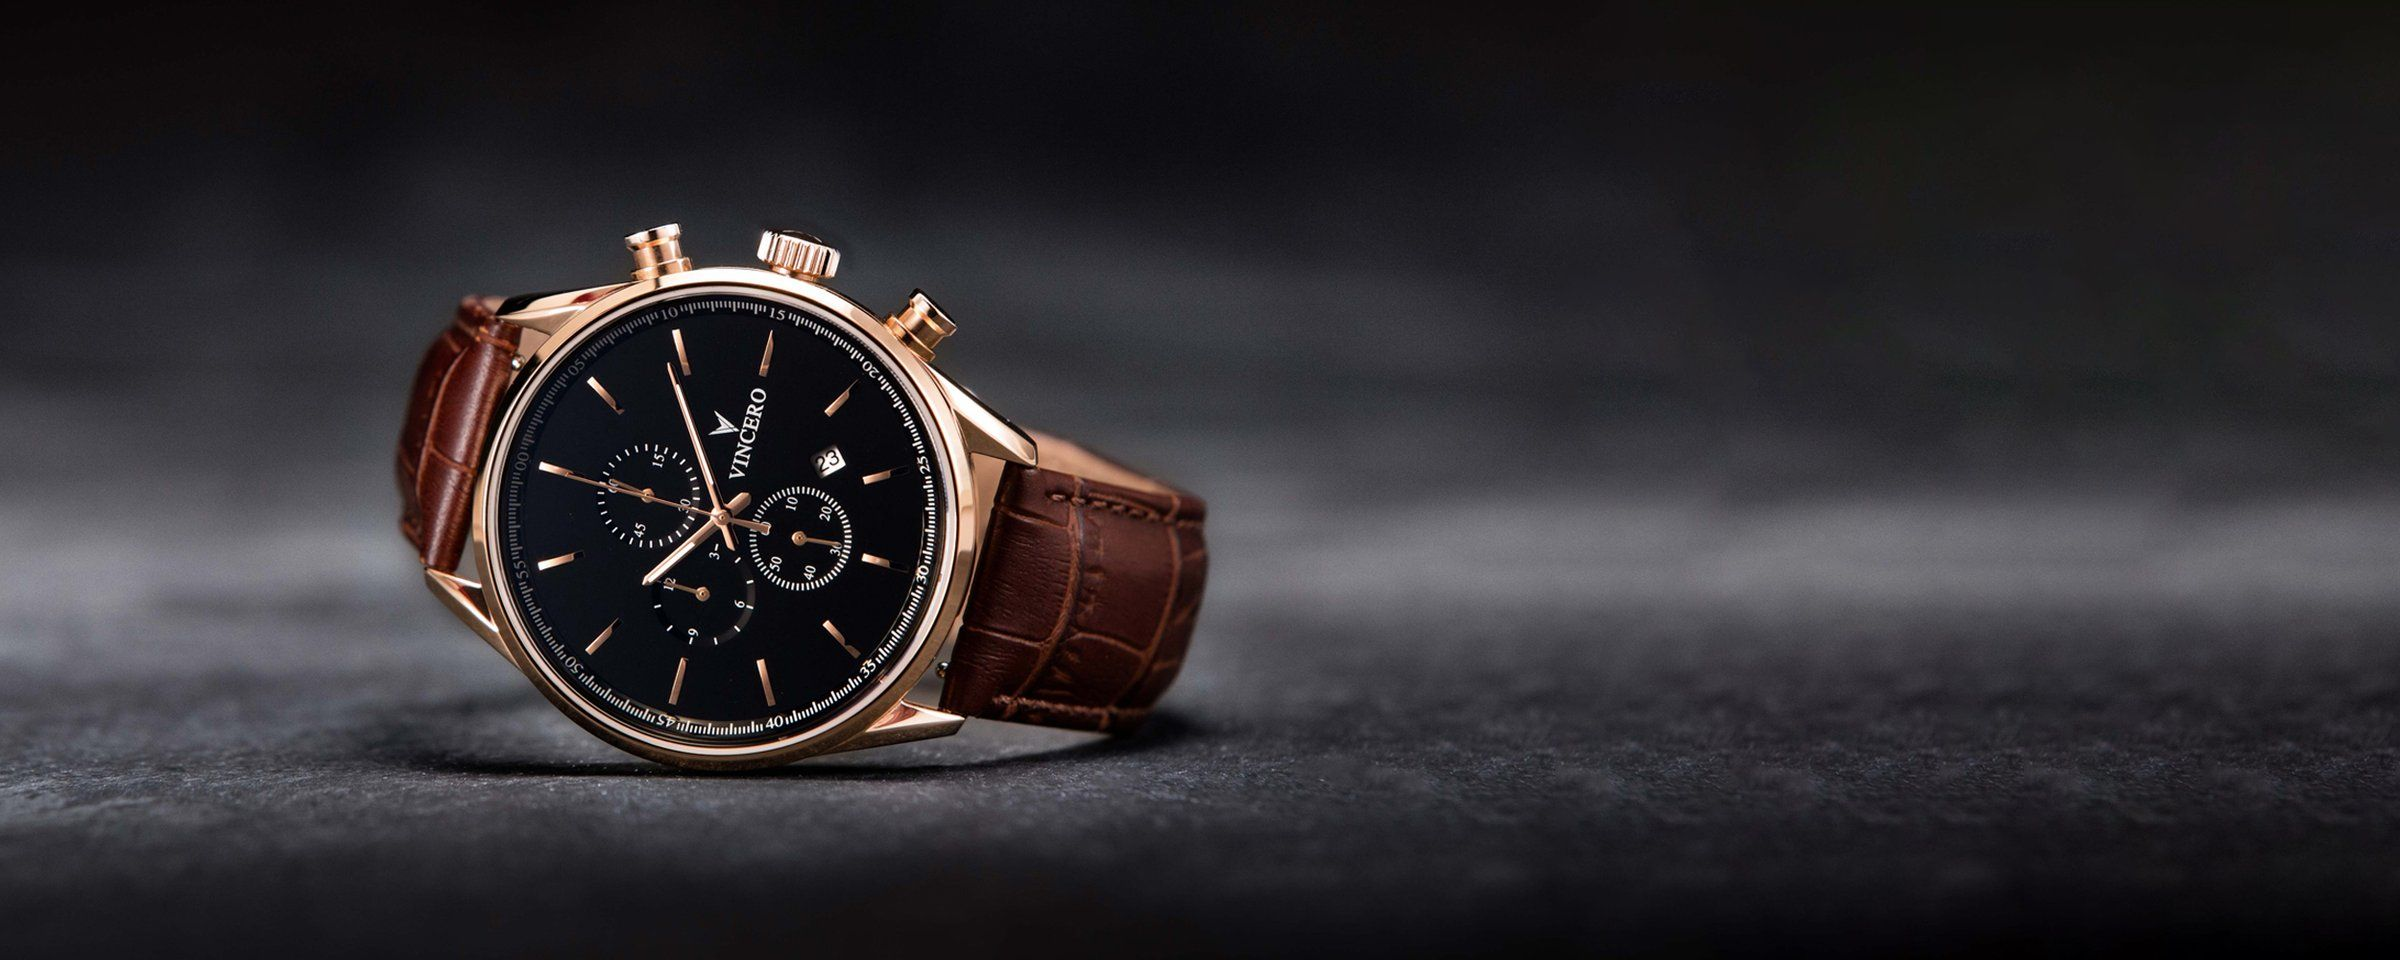 Luxury Watches Handcrafted Fairly Priced Vincero Watches Mens Luxury Vincero Watches Luxury Watches